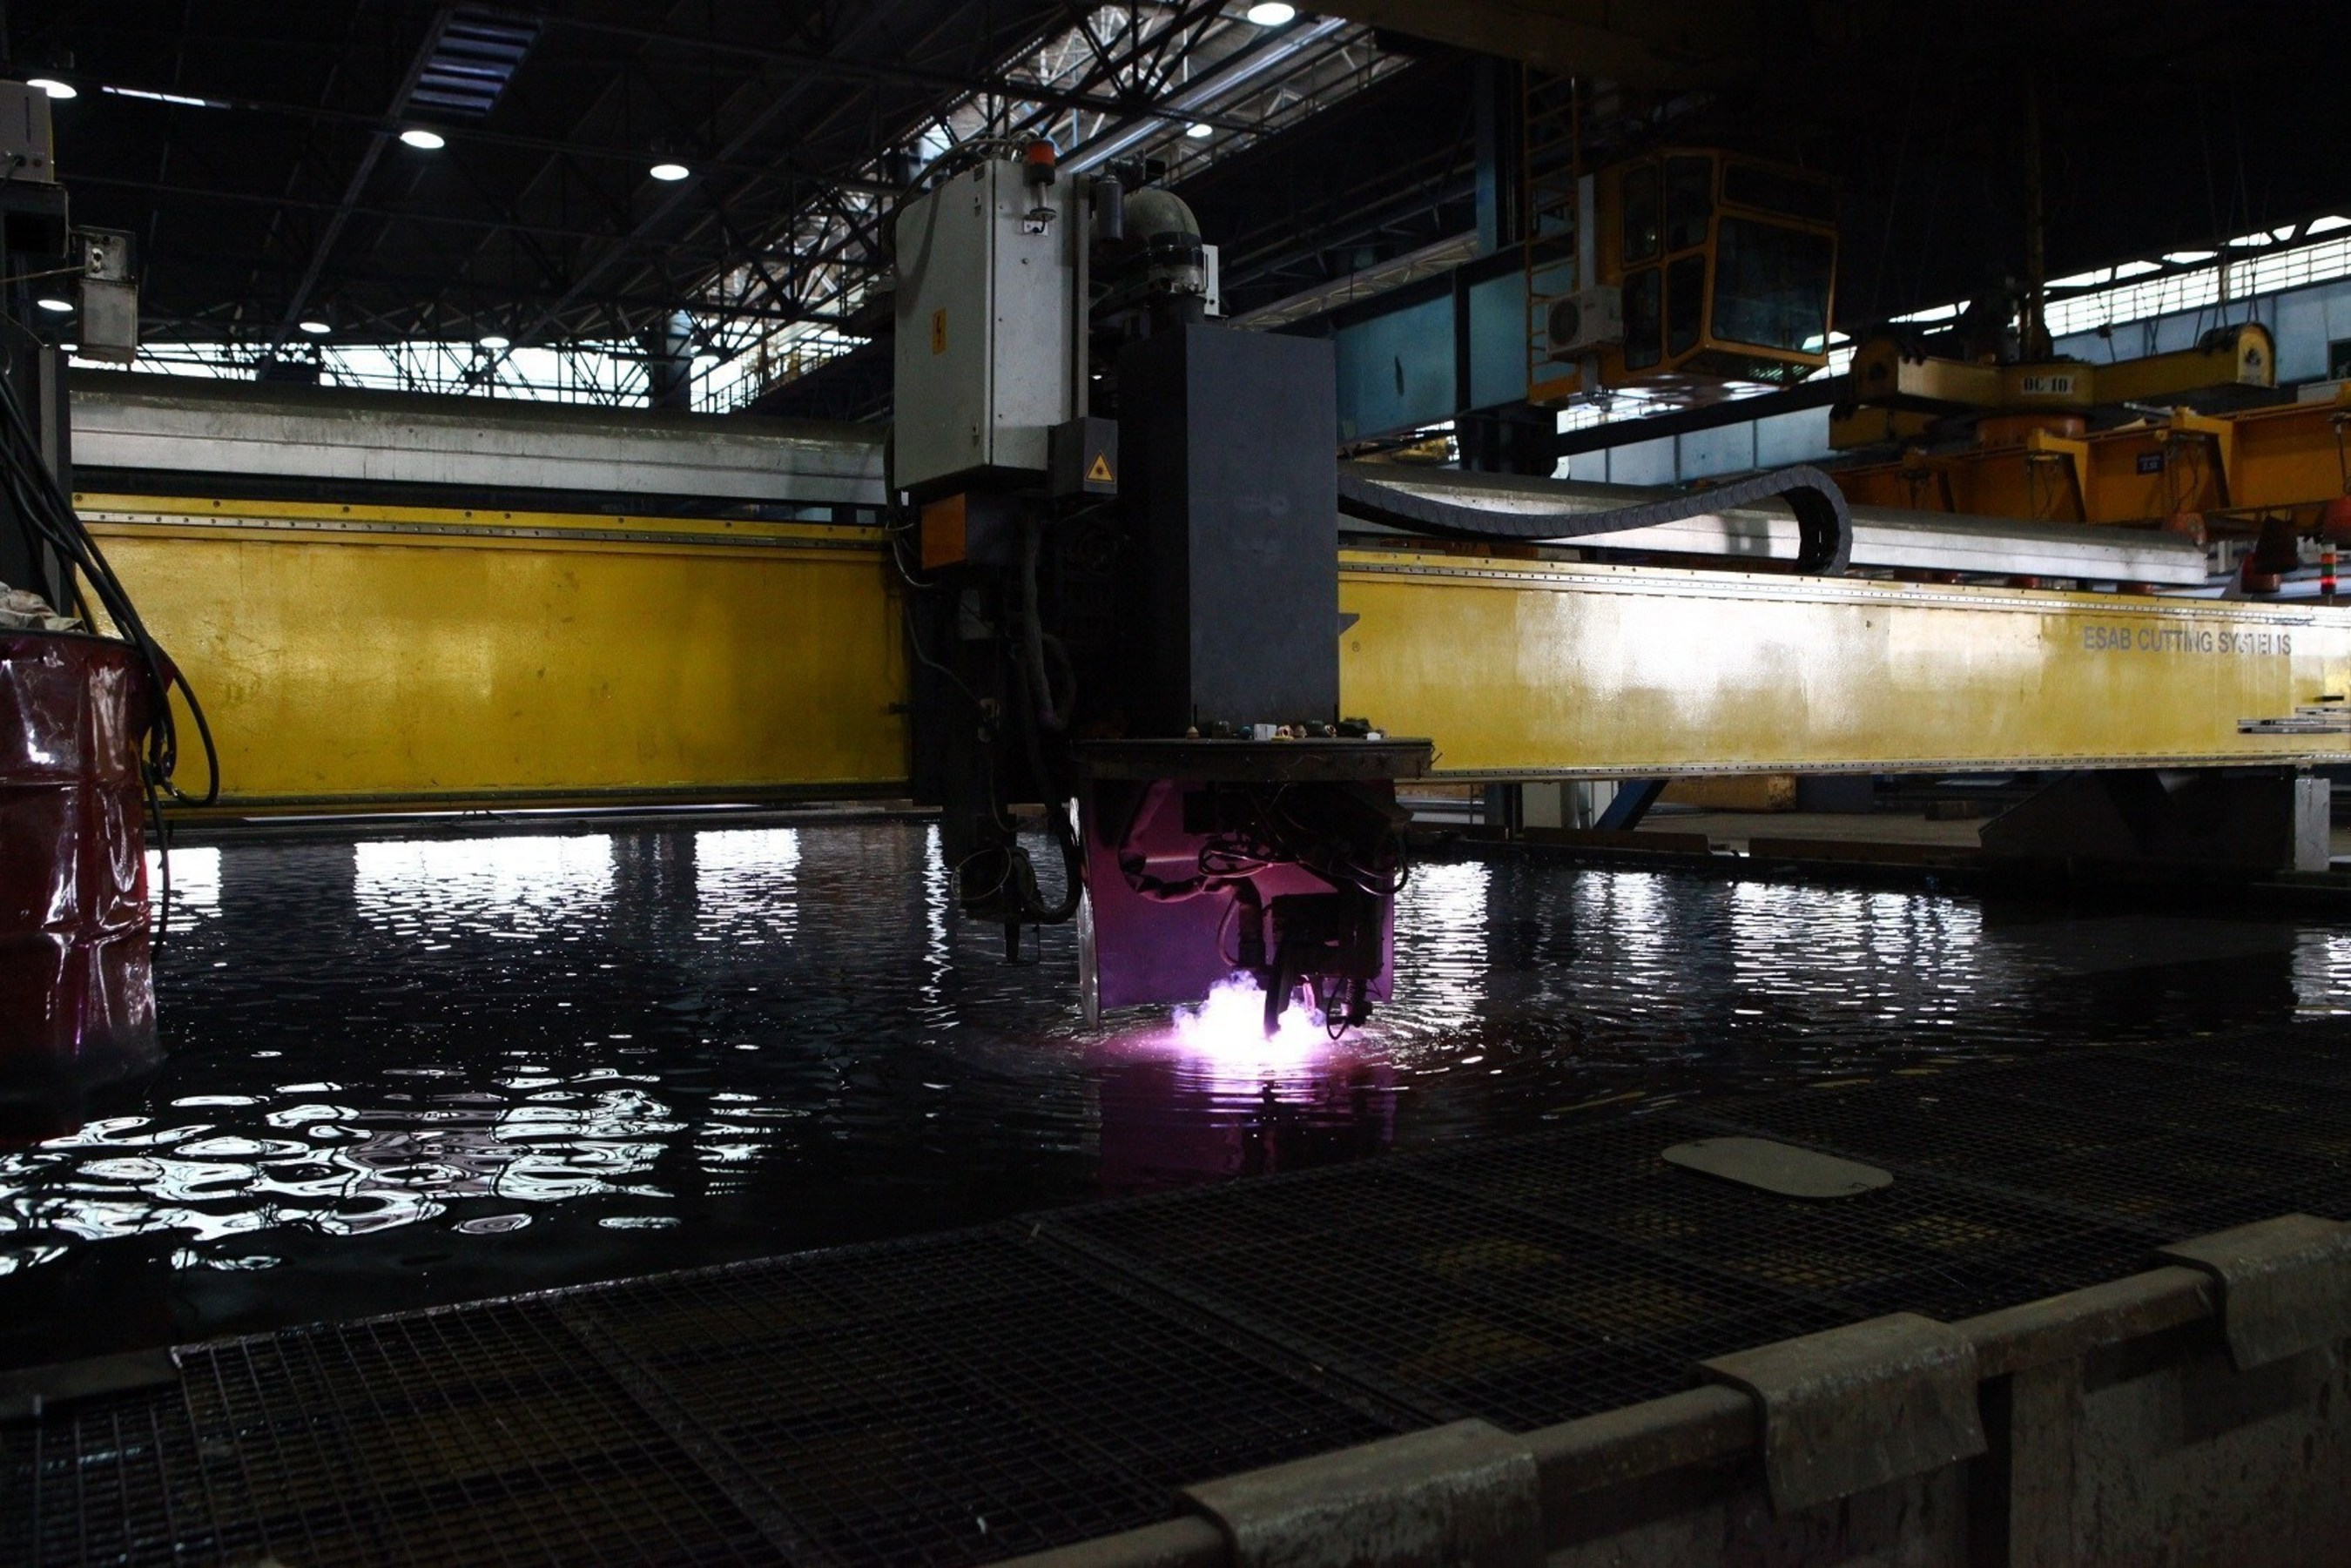 The first piece of steel is cut for Seabourn Encore, Seabourn's new ship due for delivery in late 2016.